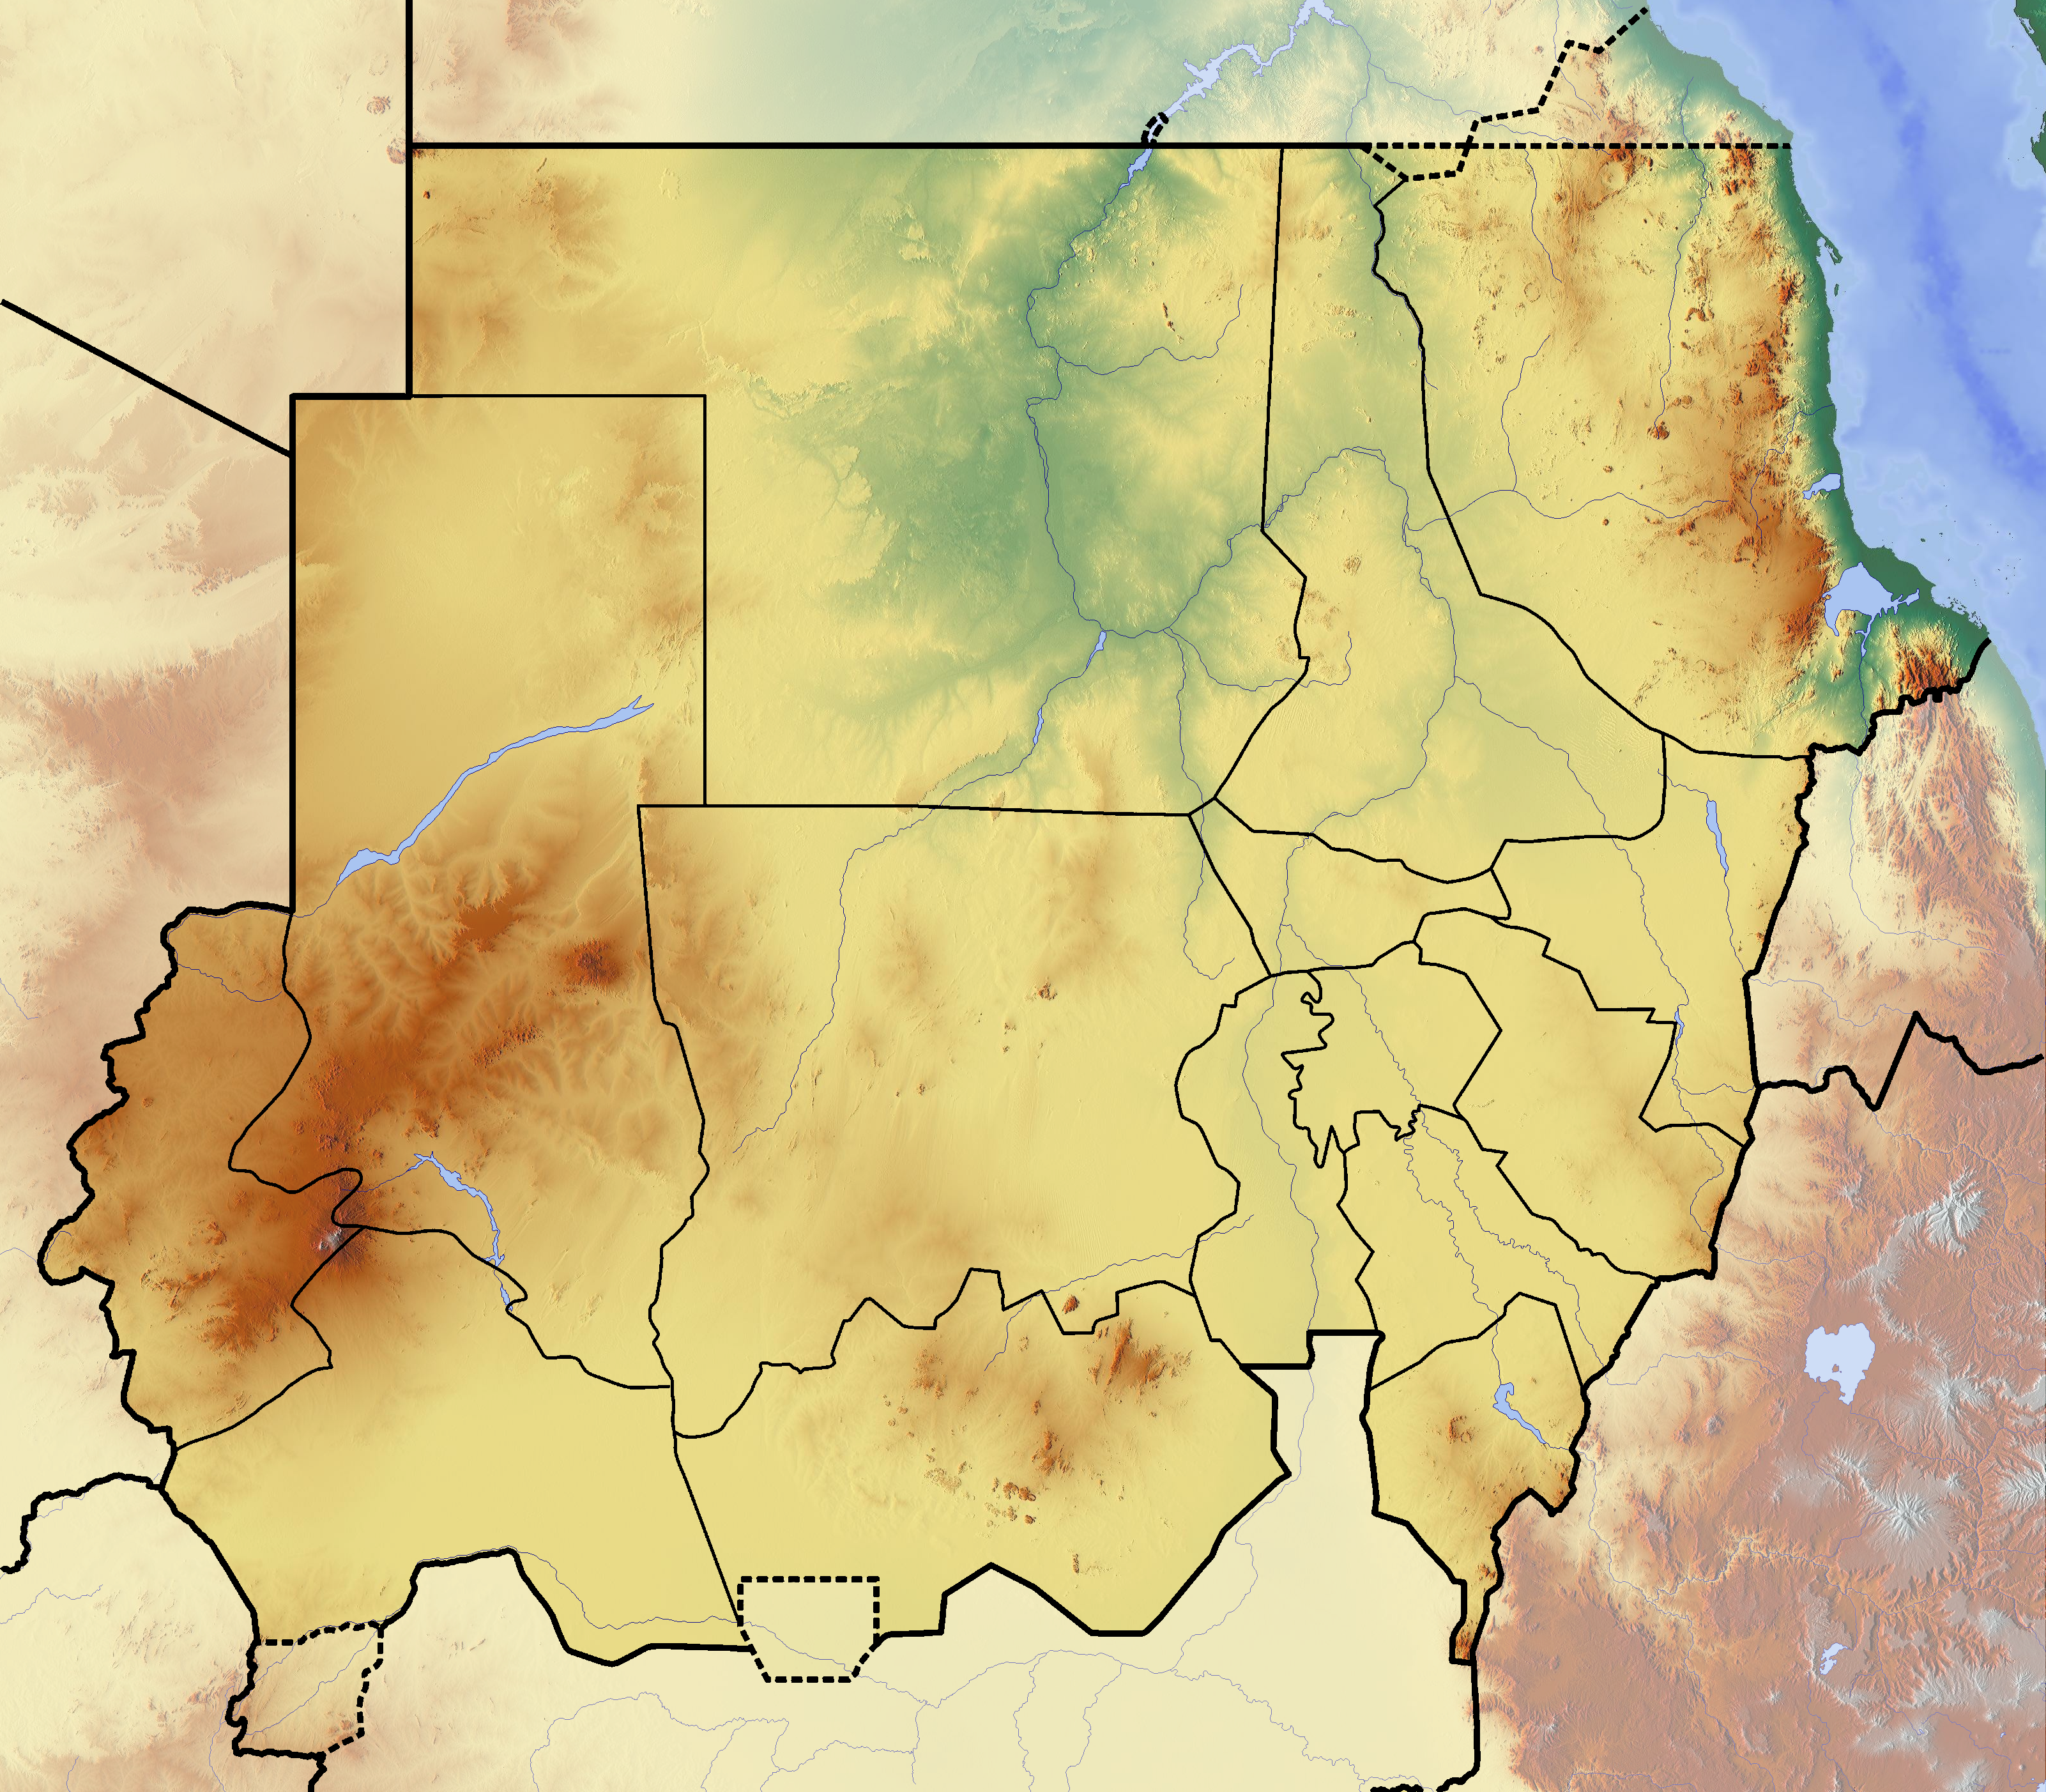 File:Sudan location map Topographic.png - Wikimedia Commons